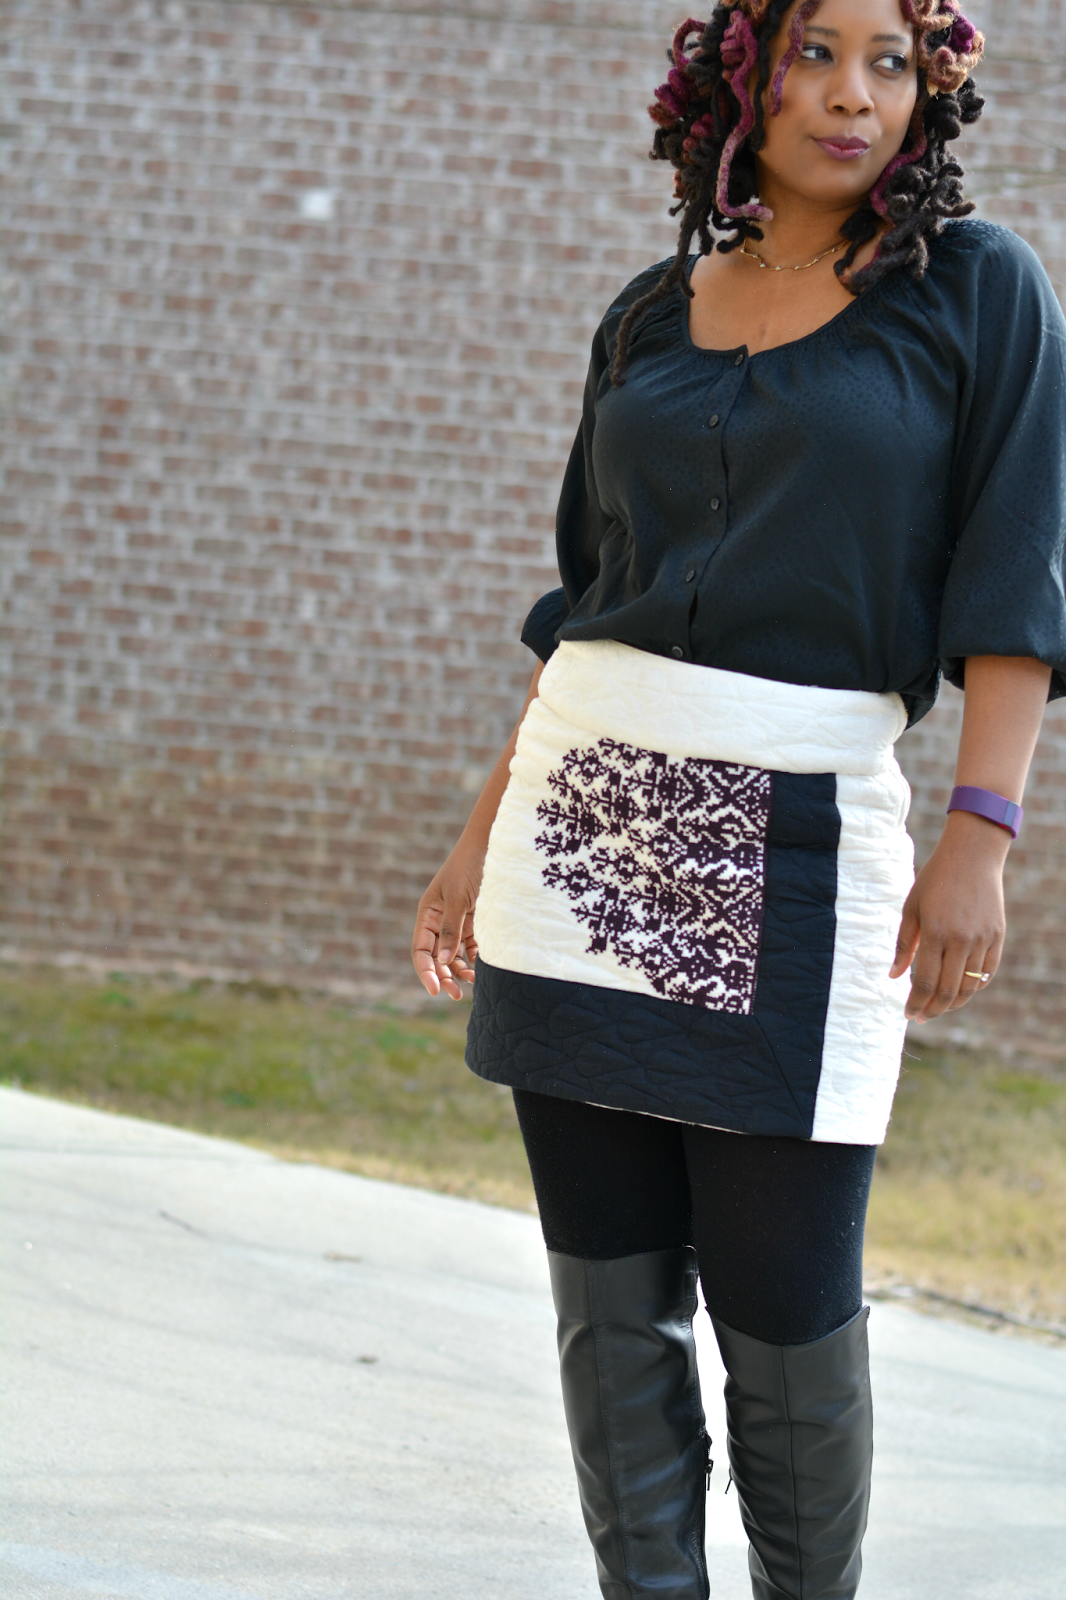 Thrifted and Quilted | Thrift store fashion, Thrift store ...